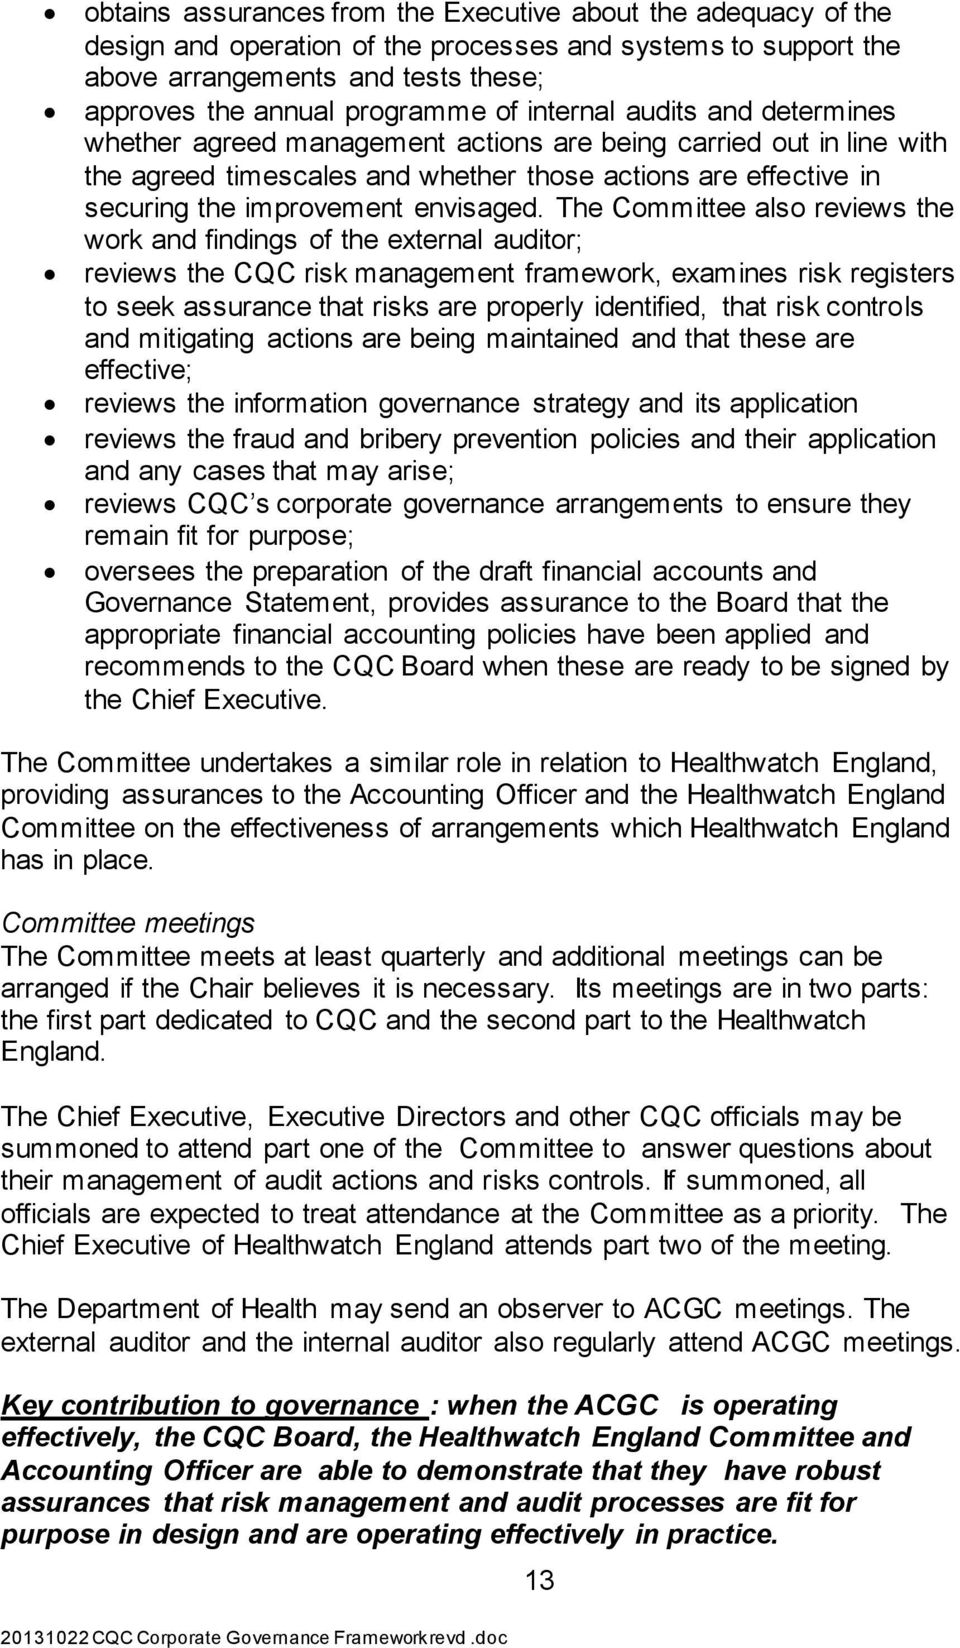 The Committee also reviews the work and findings of the external auditor; reviews the CQC risk management framework, examines risk registers to seek assurance that risks are properly identified, that